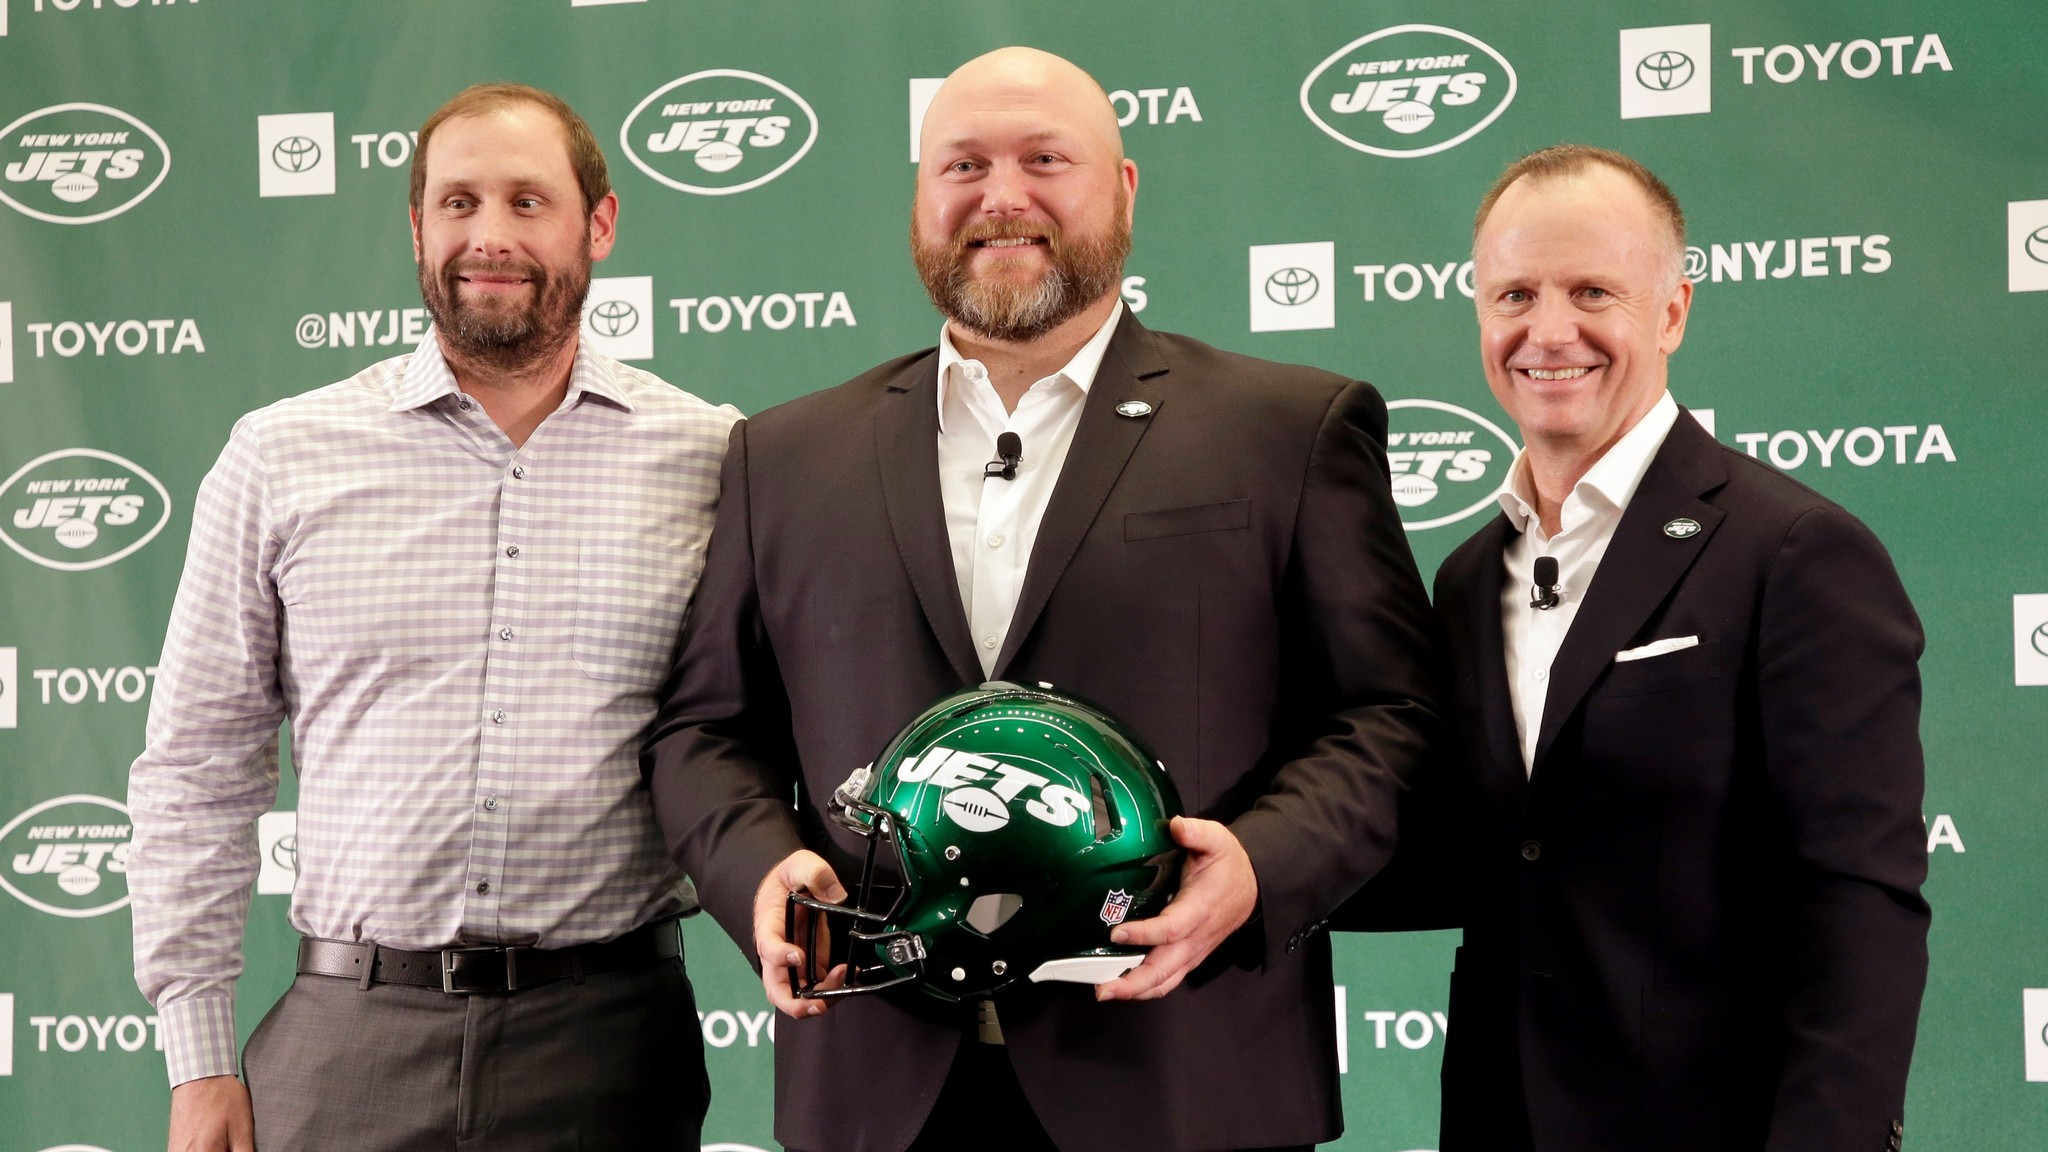 Joe Douglas will have pay 'Jets Tax' to lure top free agents, according to NFL execs